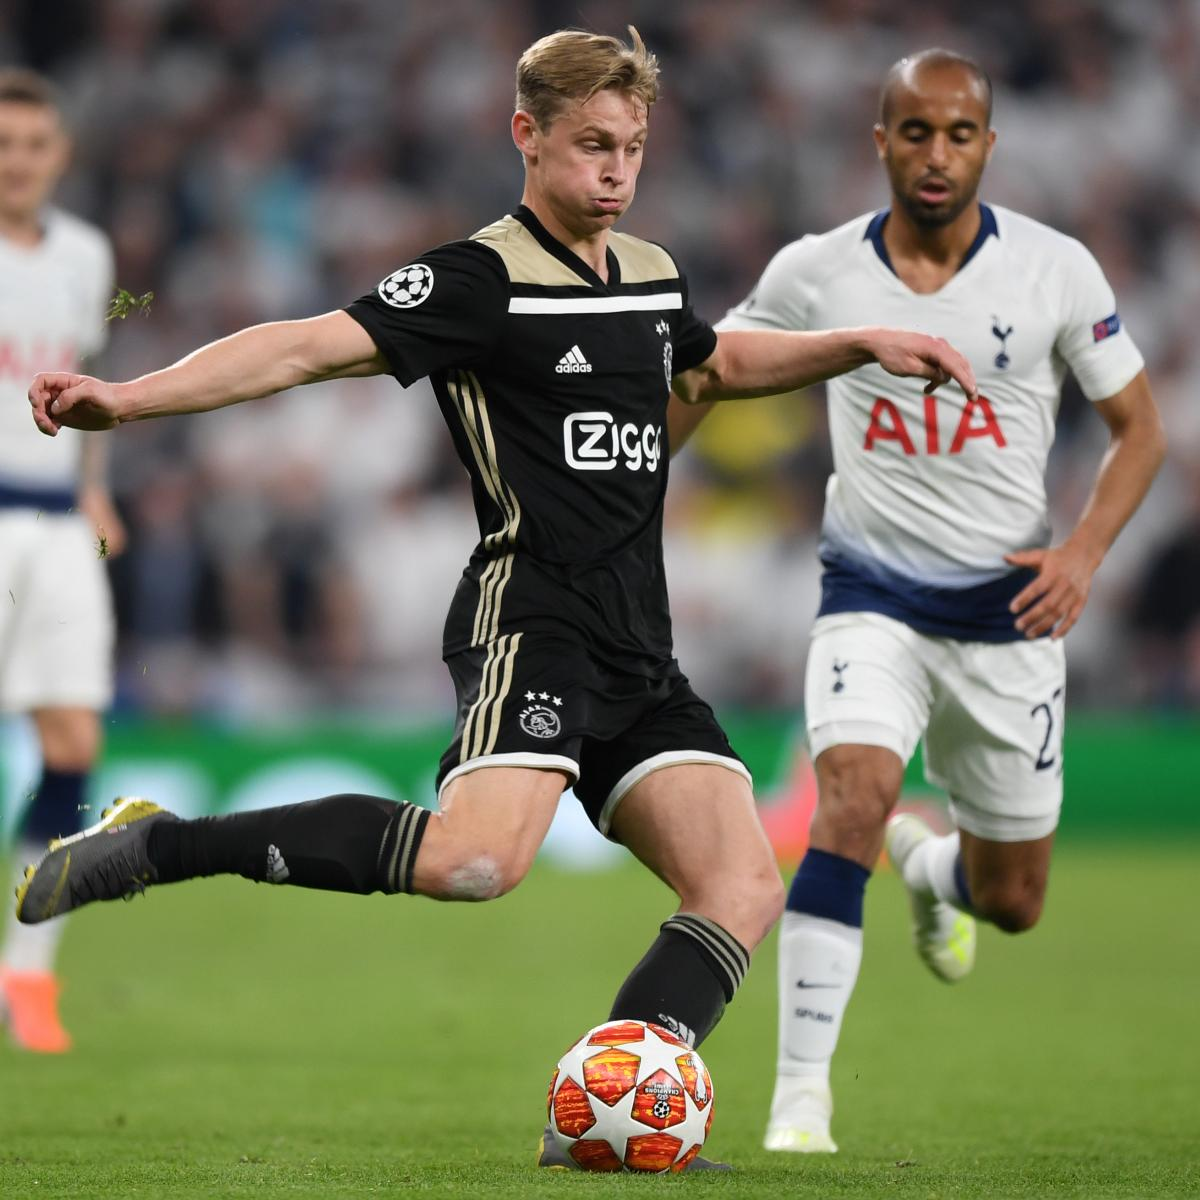 Tottenham Vs Ajax Now Tv: Ajax Vs. Tottenham Hotspur: Preview, Live Stream, TV Info